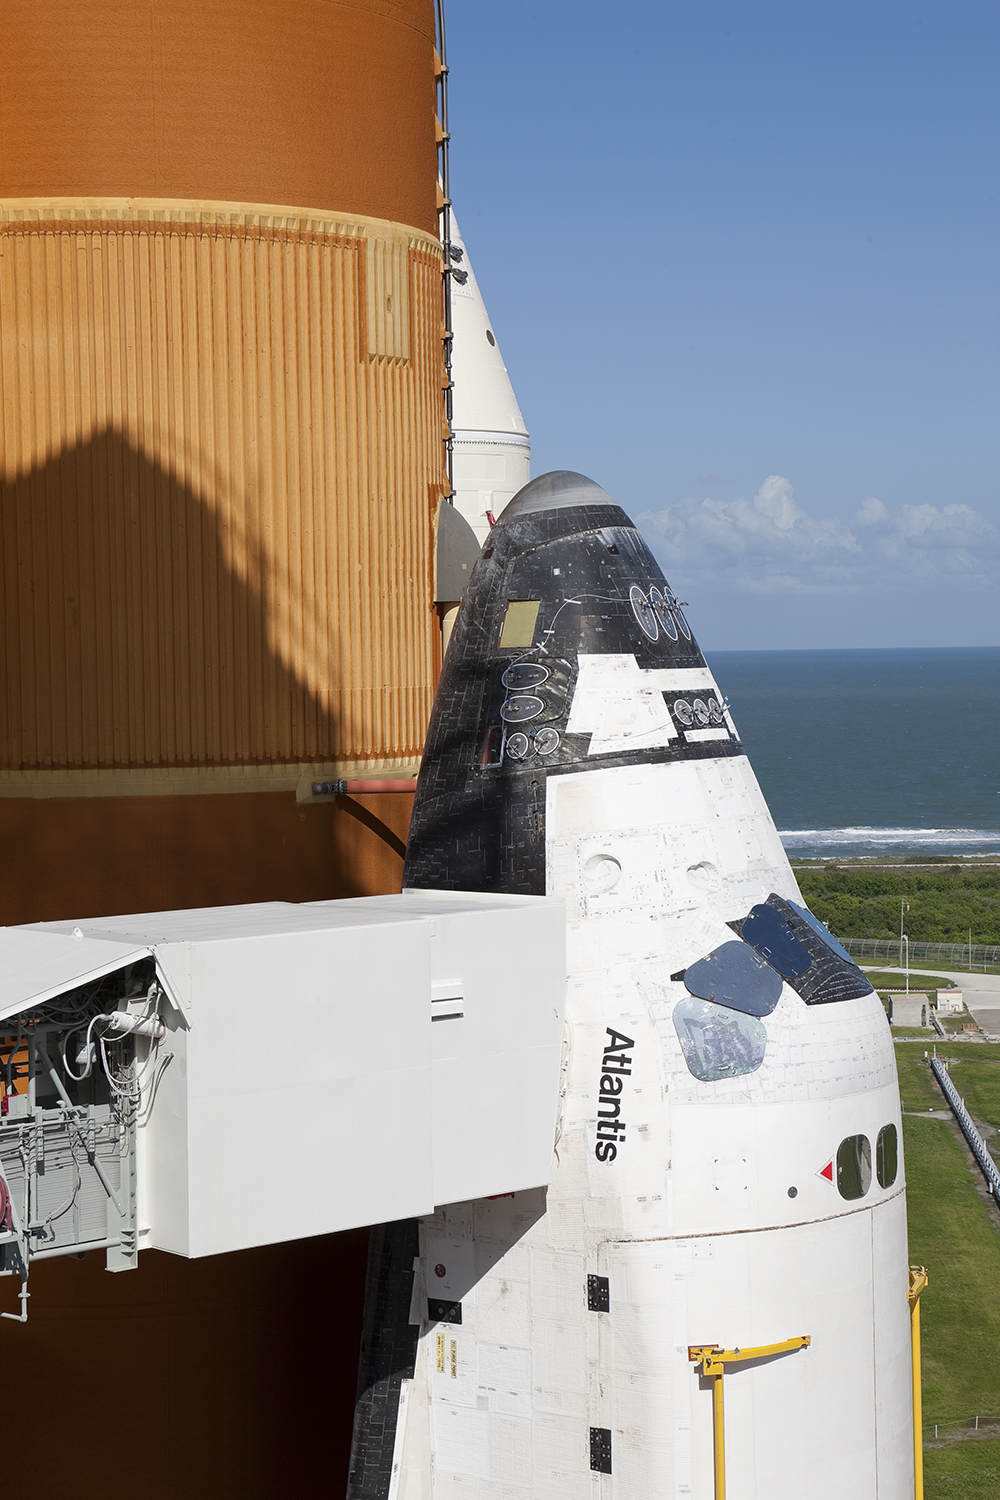 STS-125, White Room Exterior and Space Shuttle Atlantis, Pad 39A